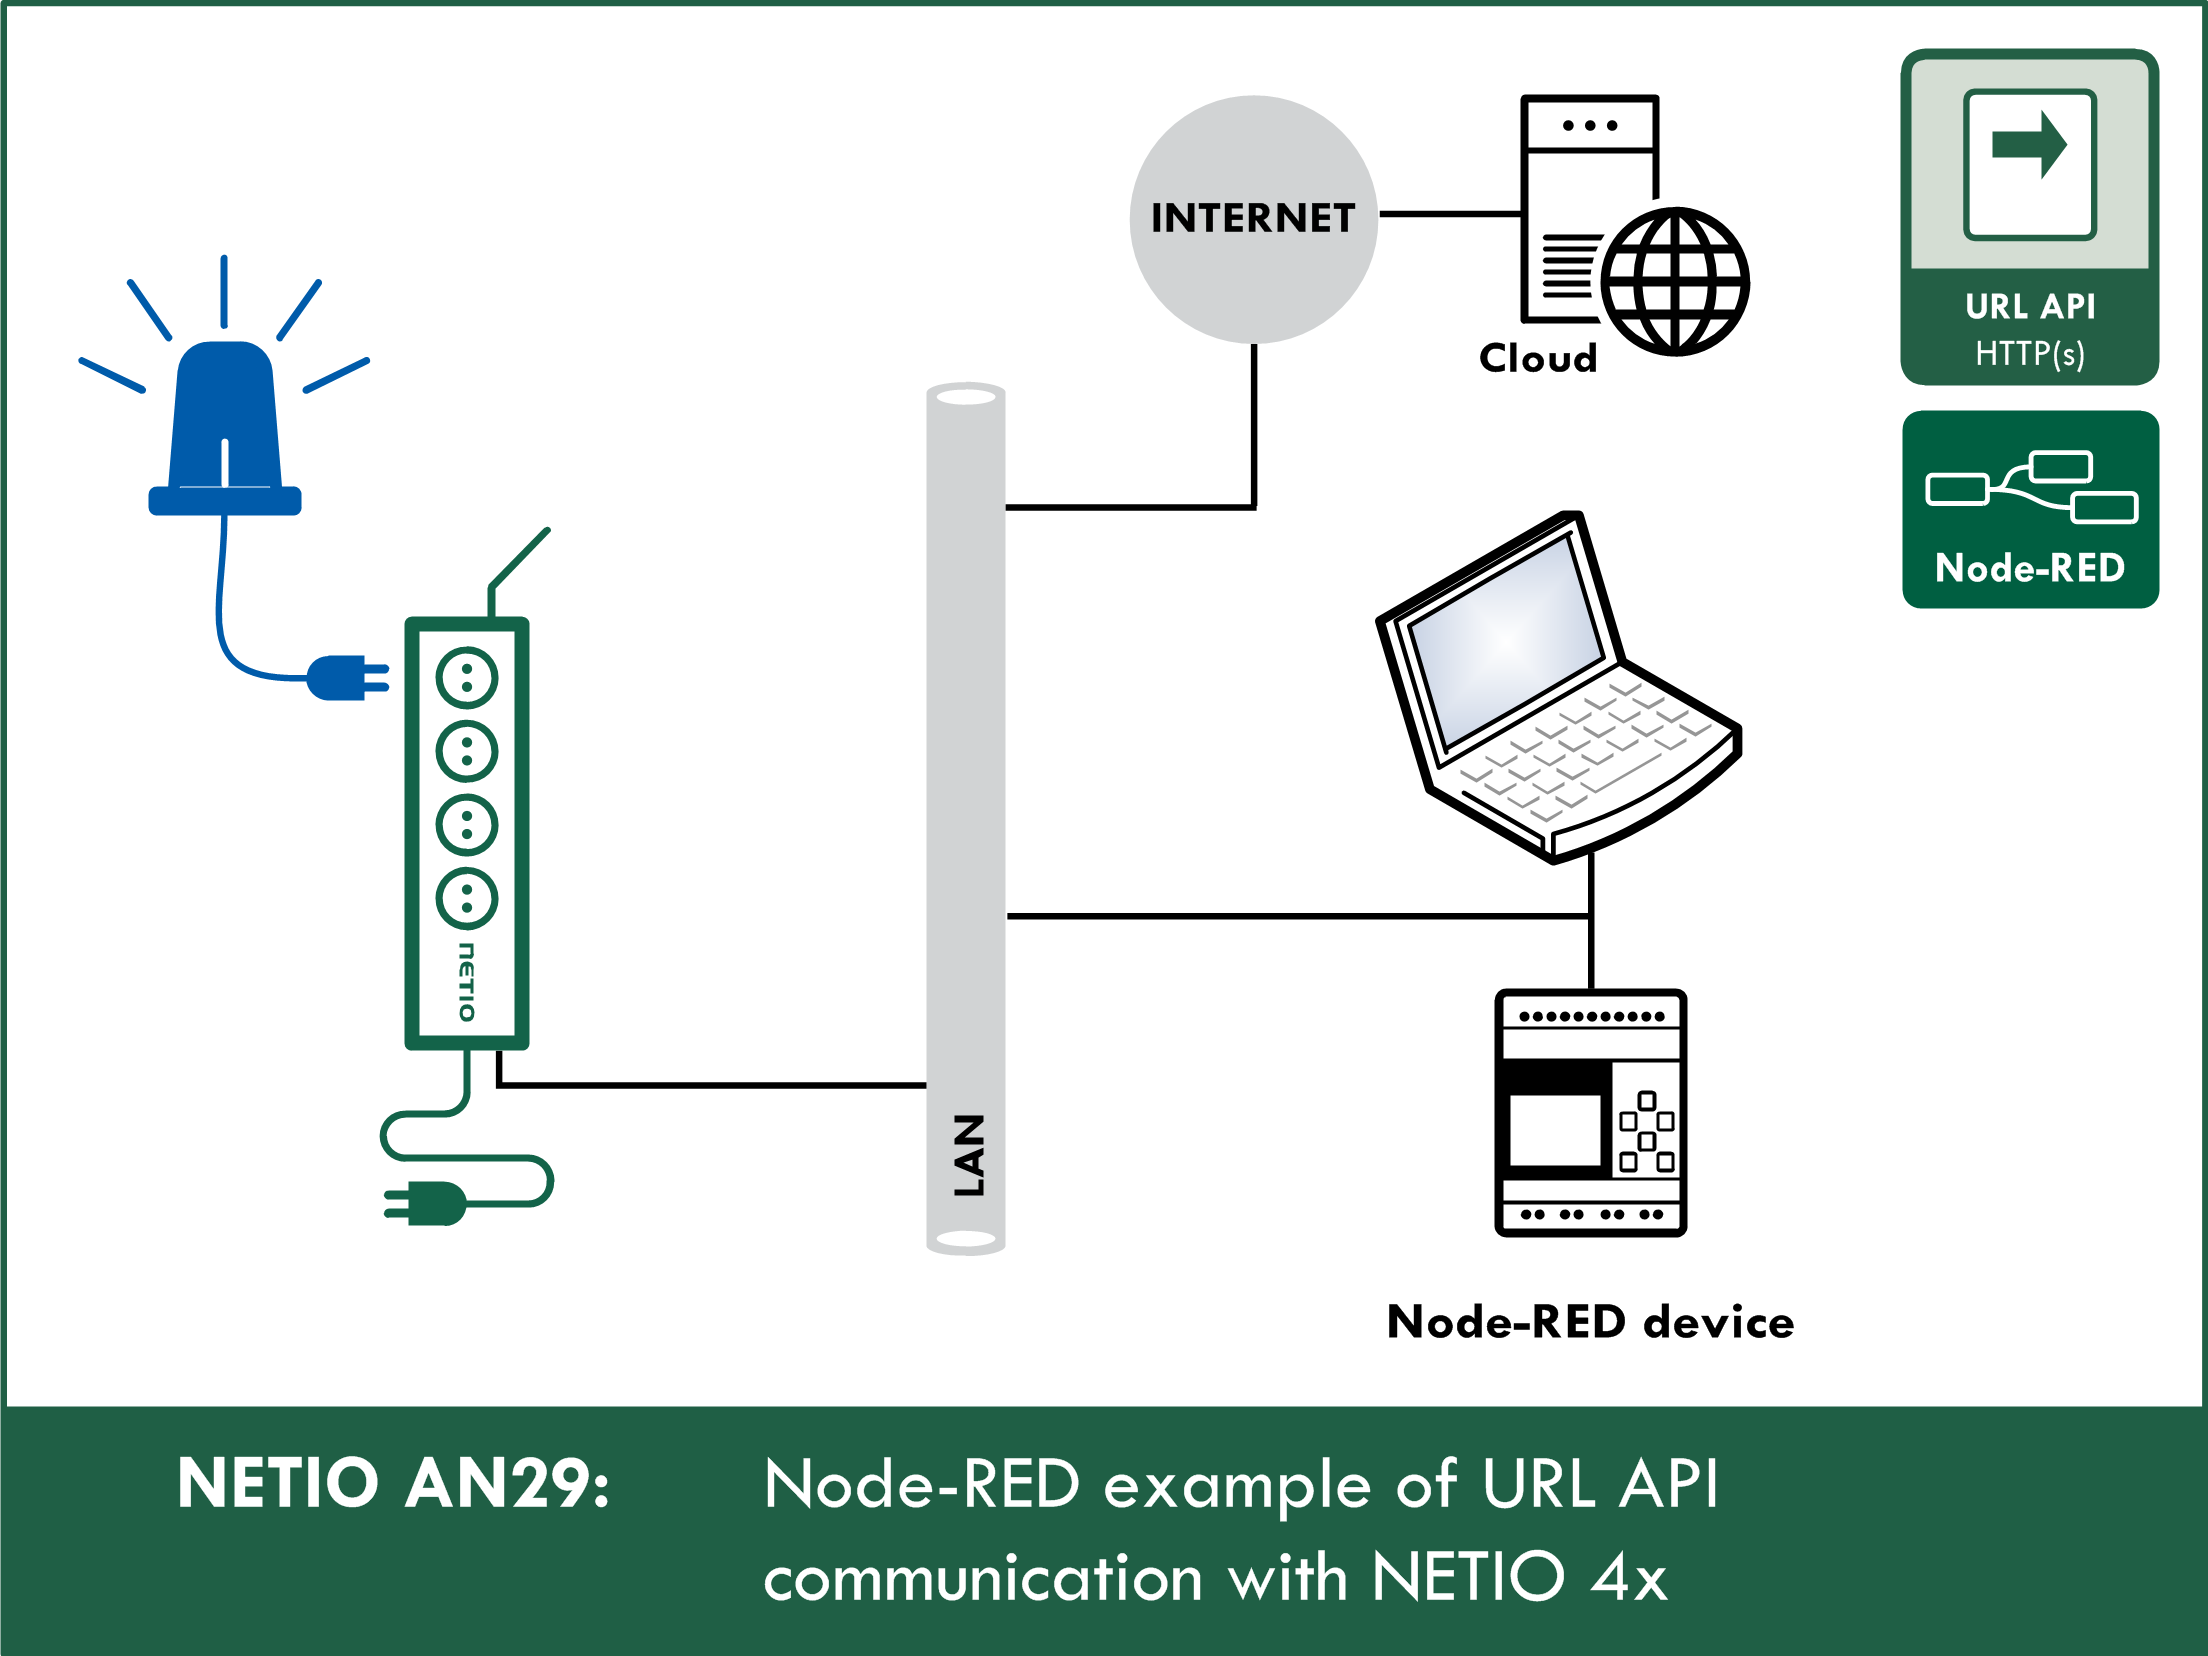 Node-RED example of URL API communication with NETIO 4x